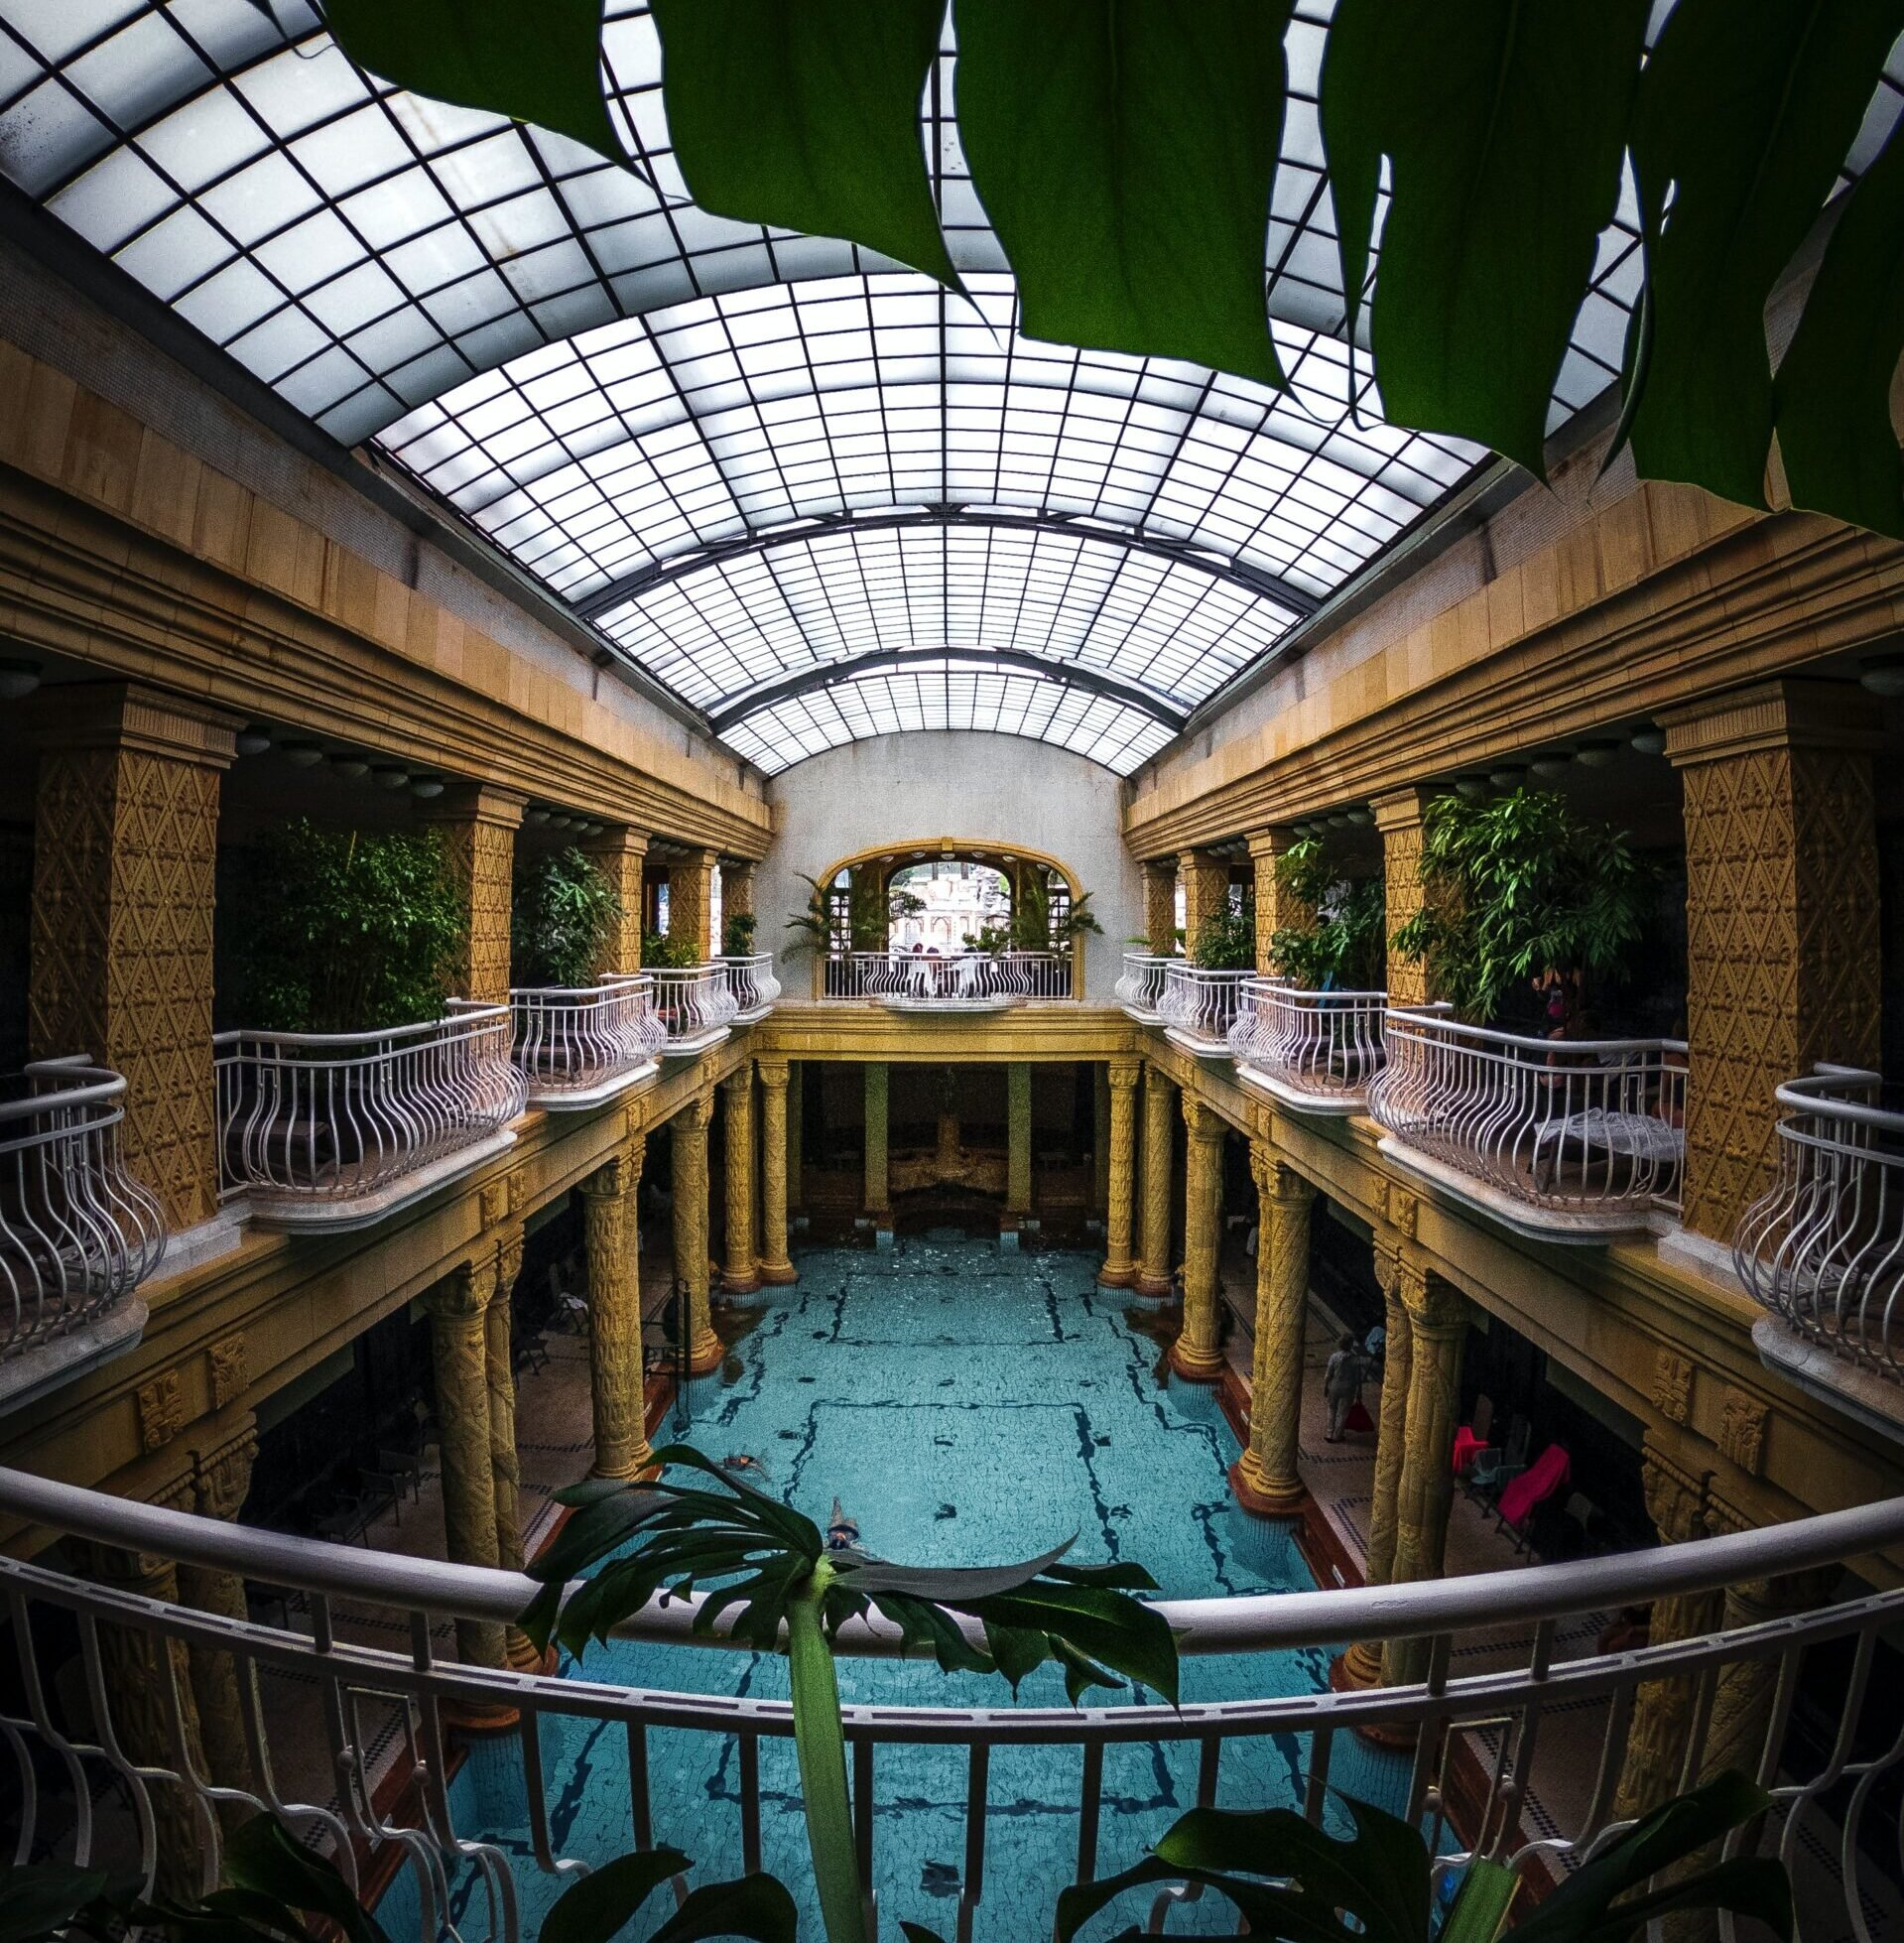 Balconies above a heated pool in budapest.